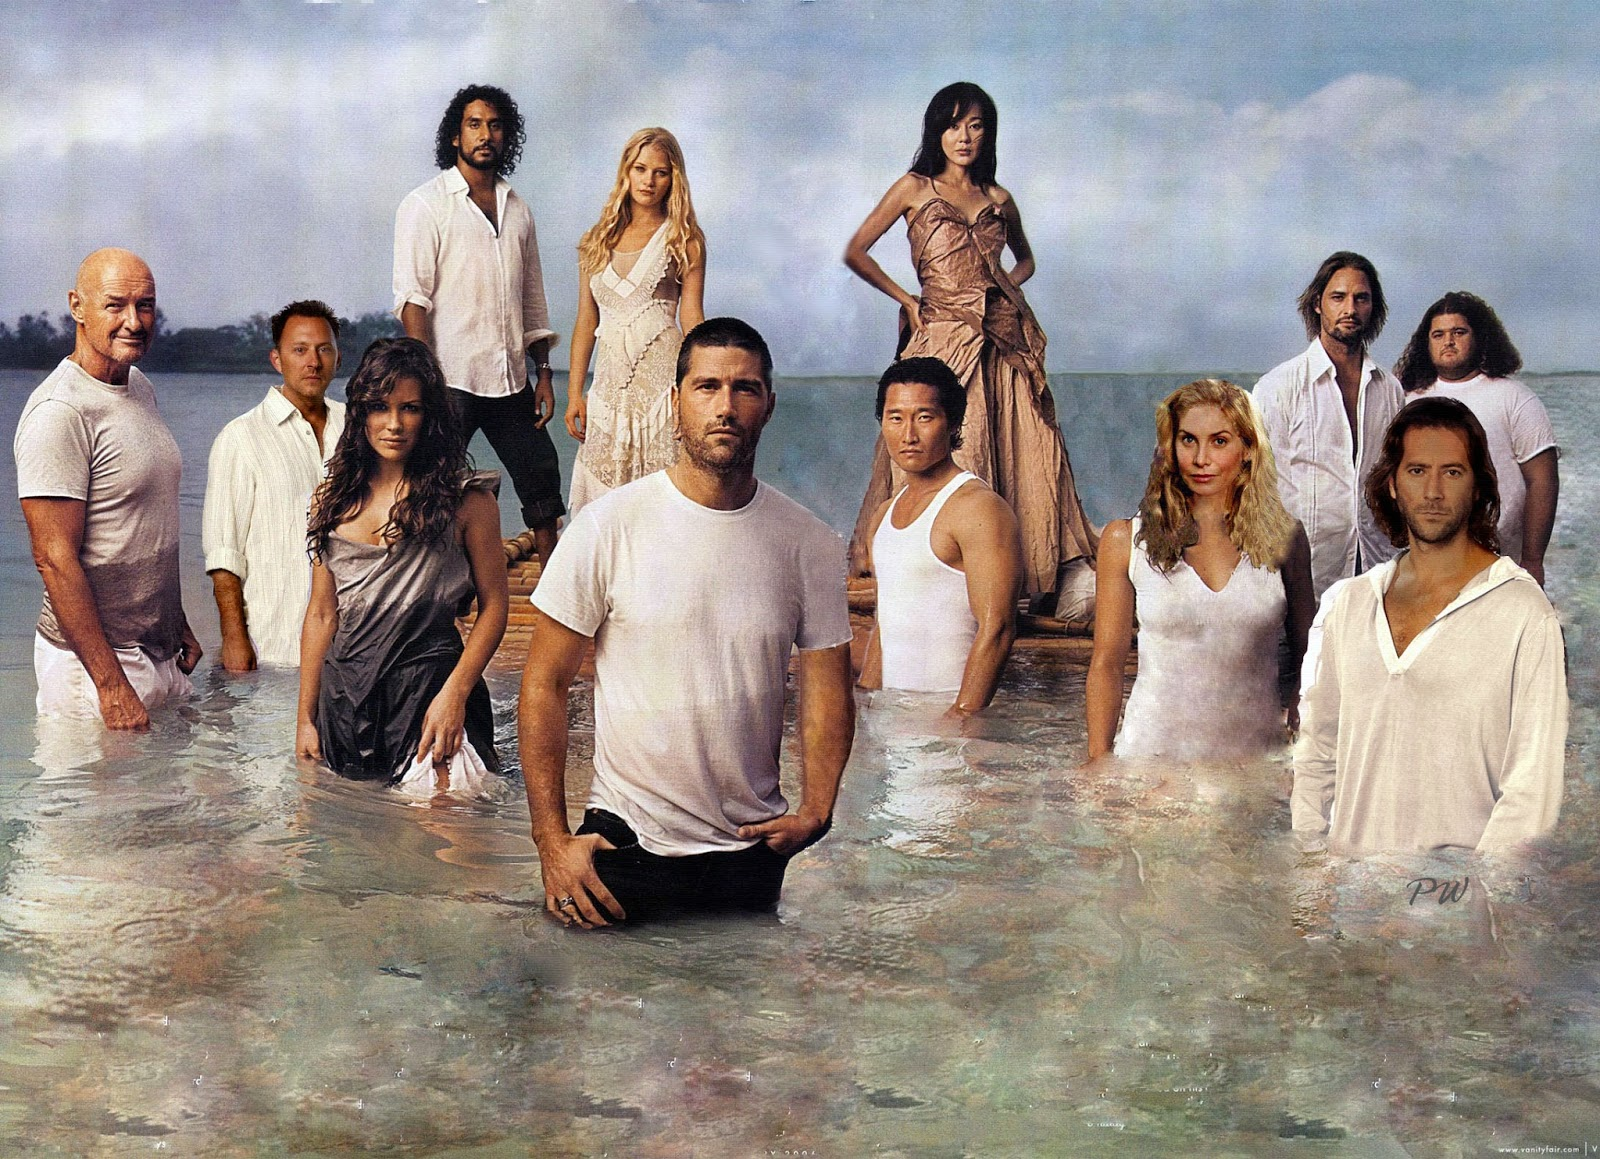 Lost-Perdidos-10-frases-famosas-populares